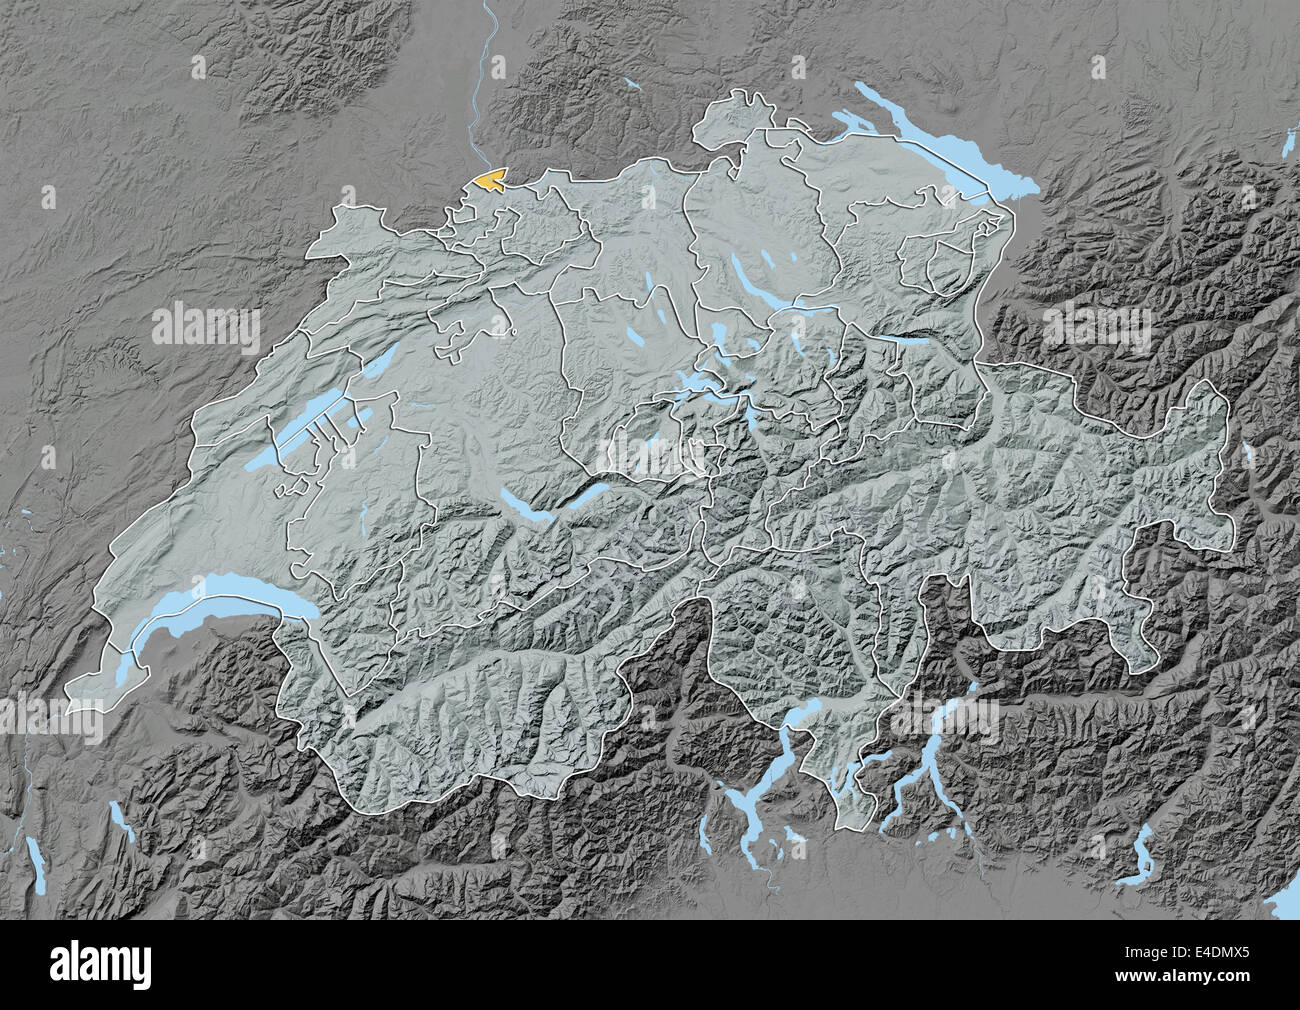 Canton of Basel City Switzerland Relief Map Stock Photo 71601885